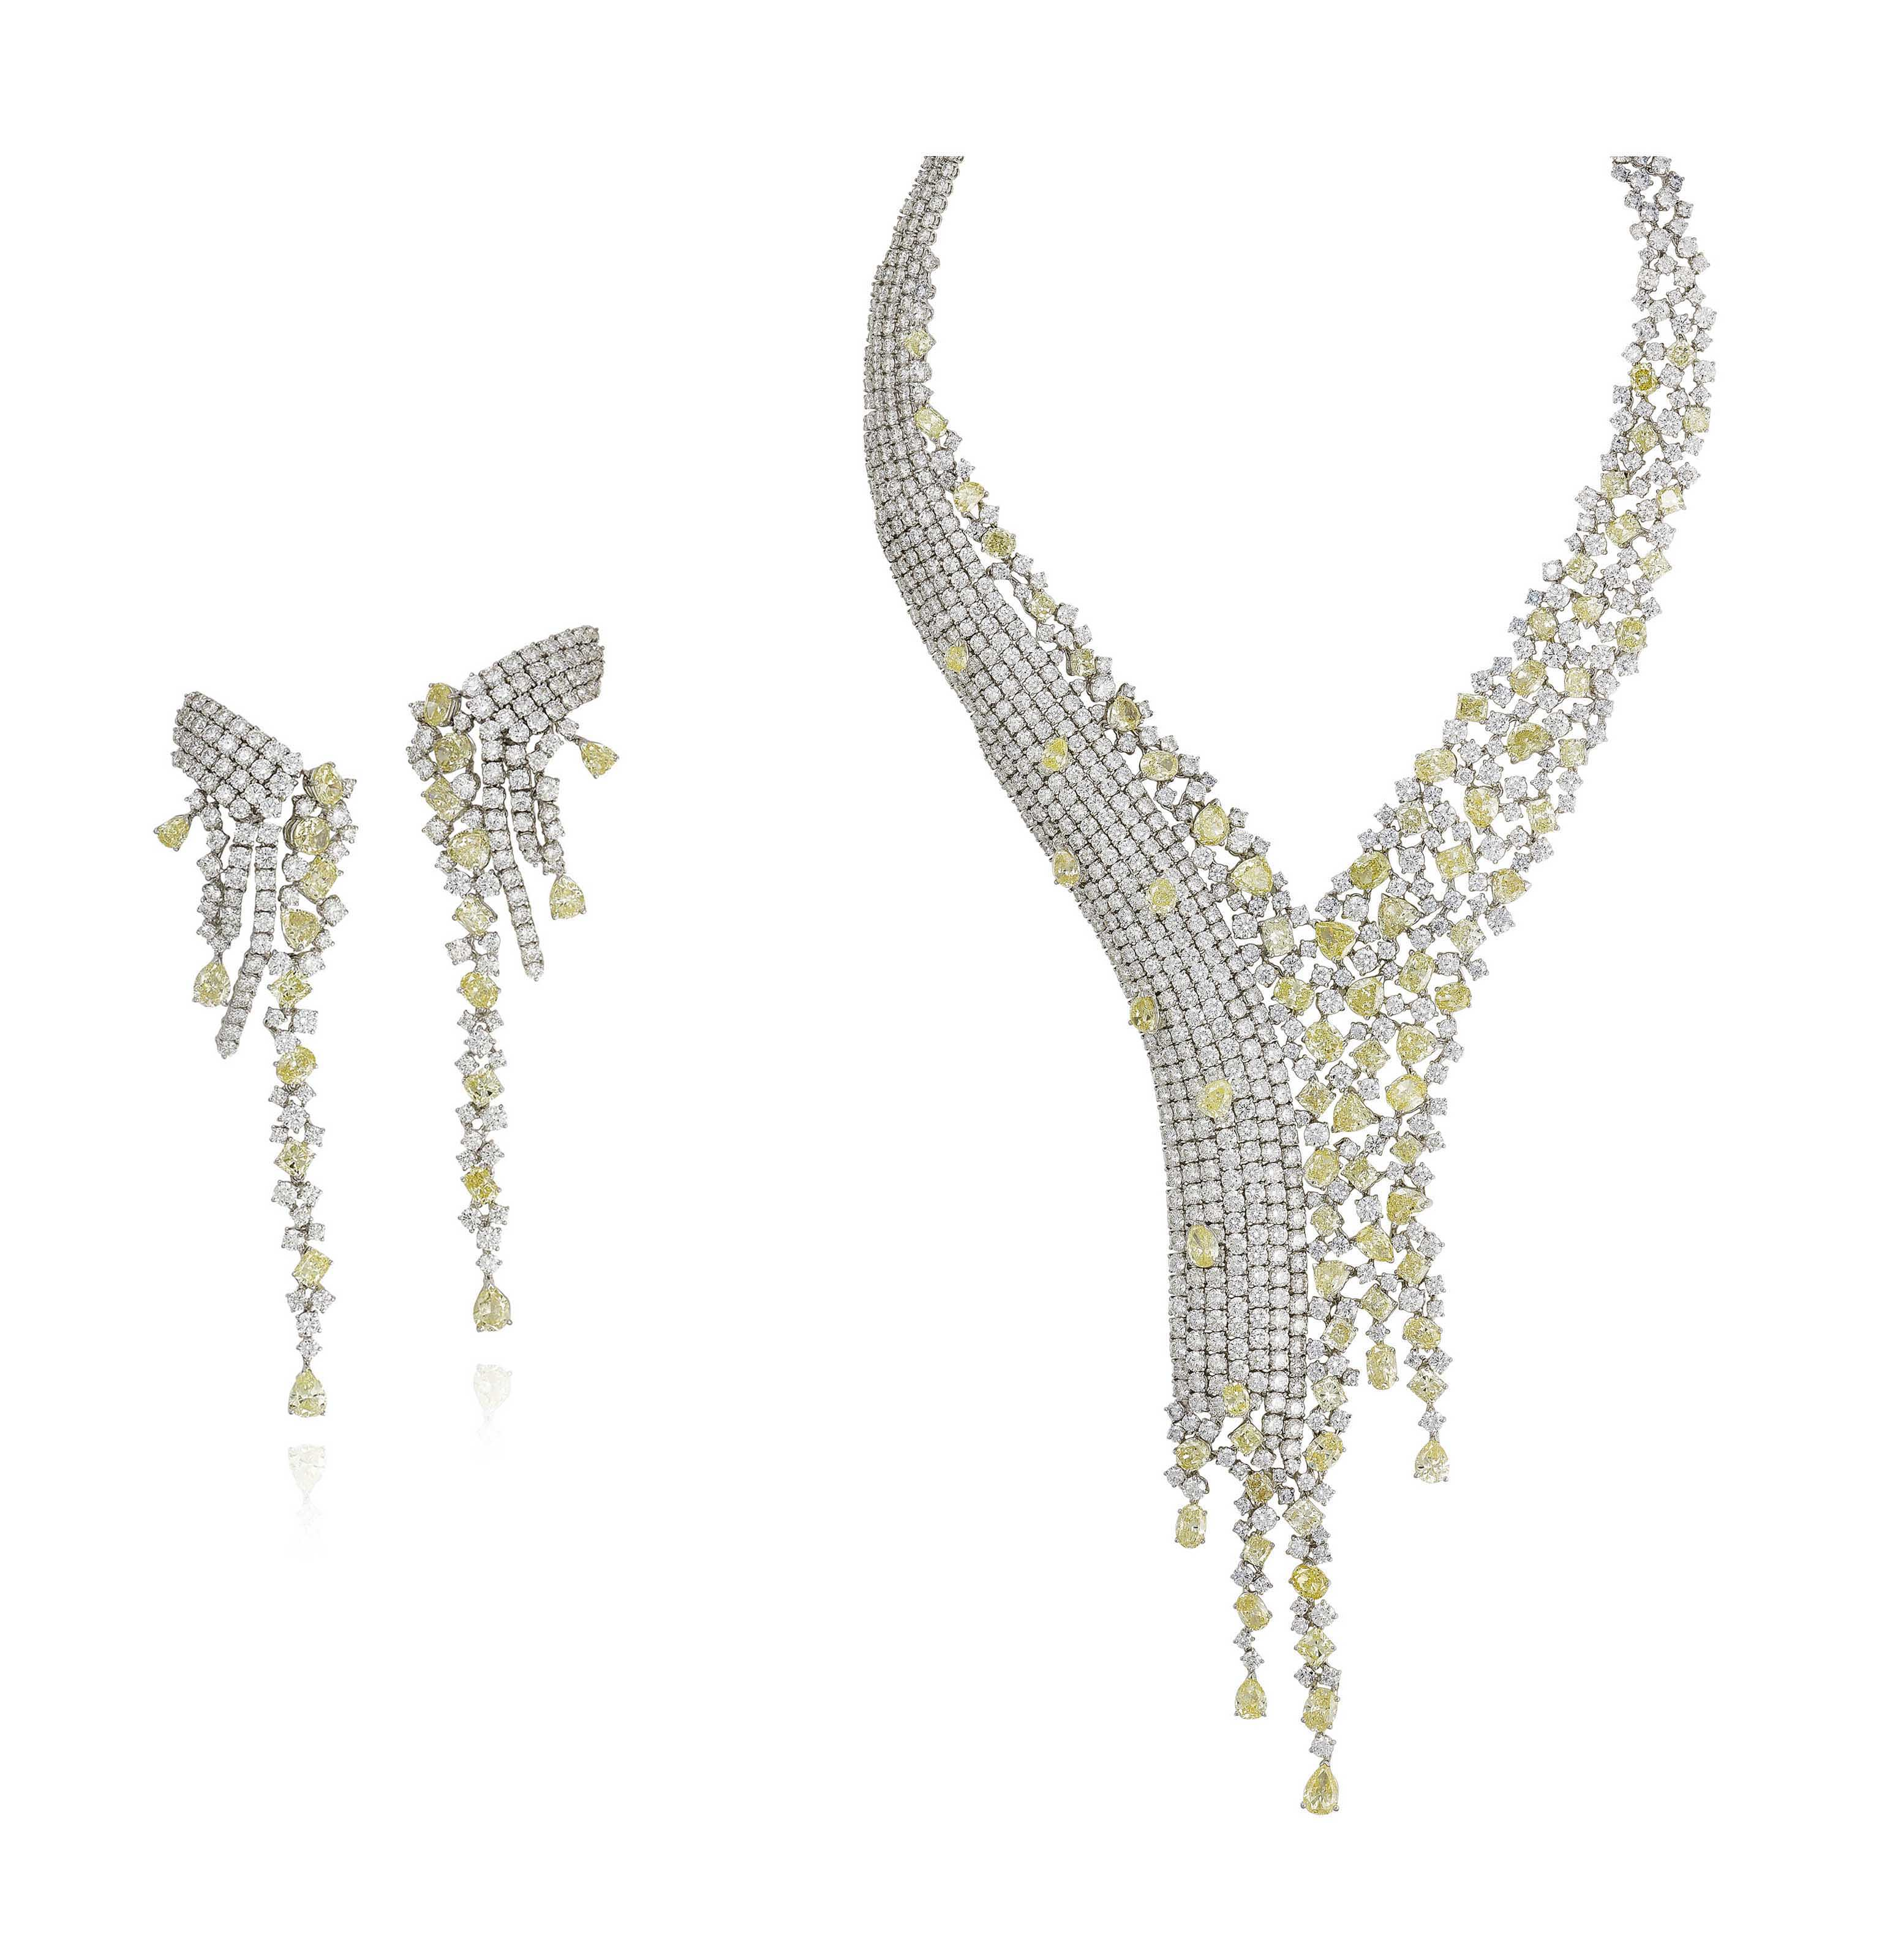 A DIAMOND AND COLOURED DIAMOND NECKLACE AND EARRING SET